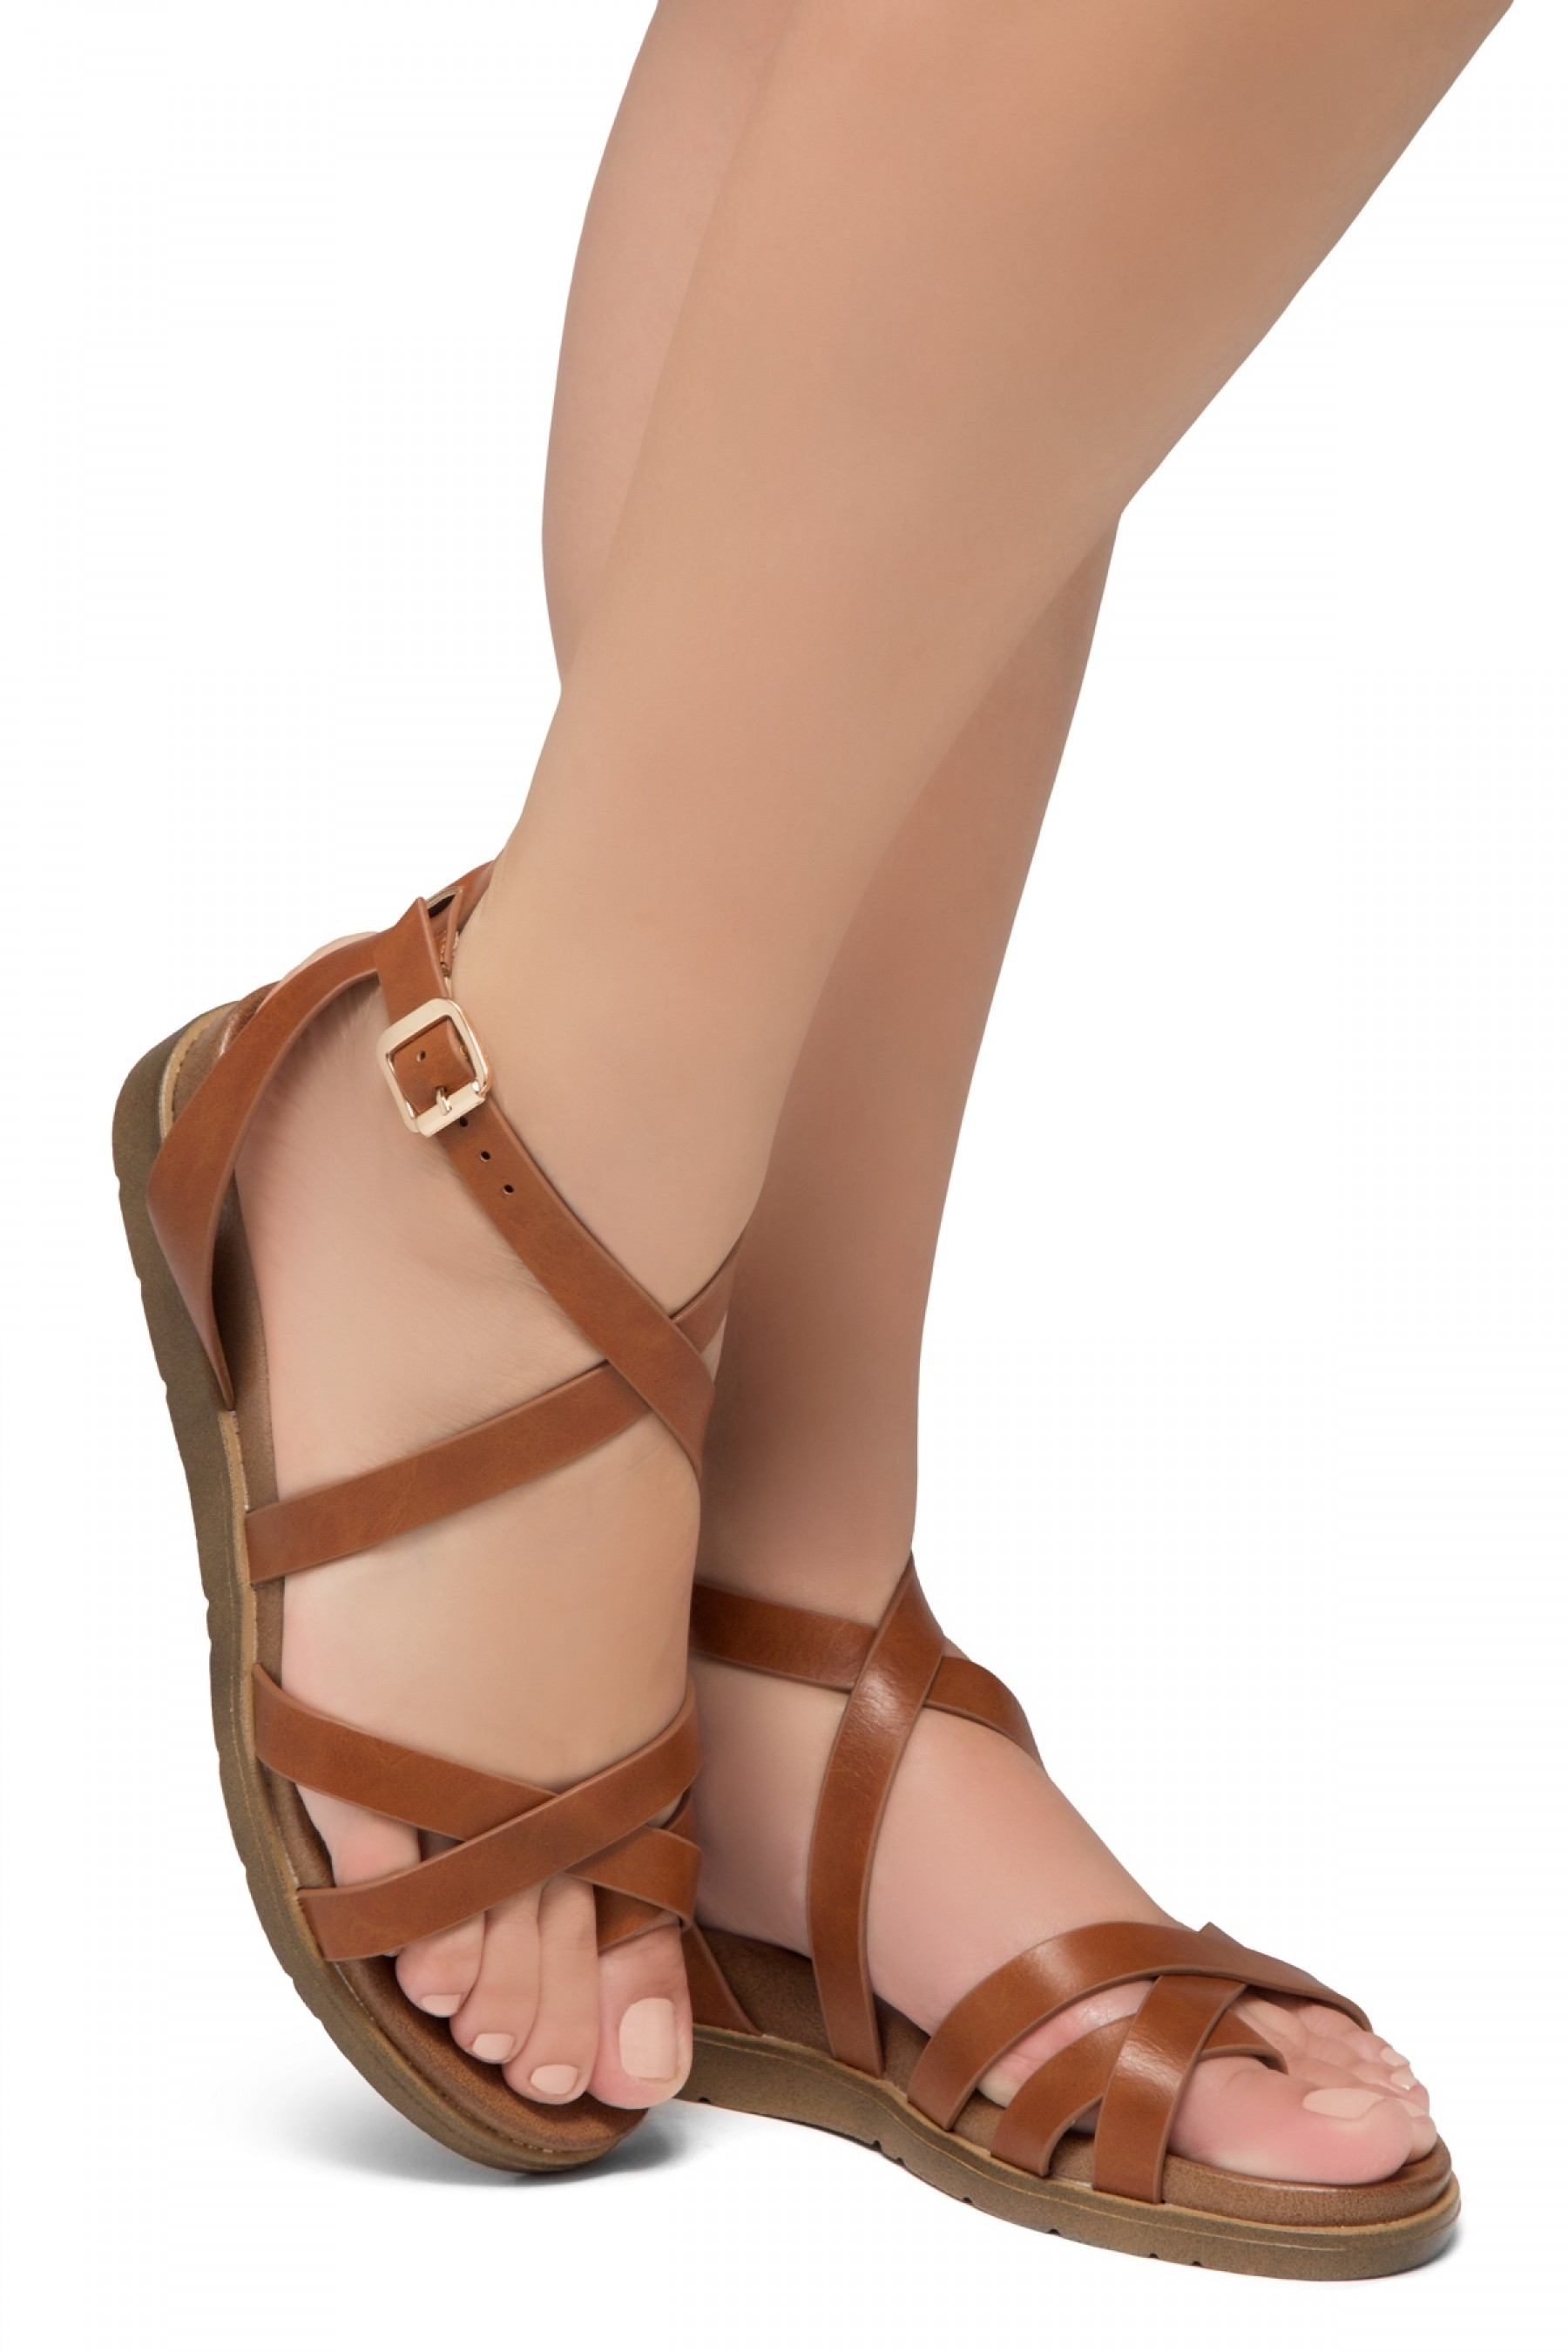 Shoe Land Dessi-Women's Fashion Strap Sandals Toe Loop with Buckle Low Wedge Platform Heel Comfortable Shoes (Tan)